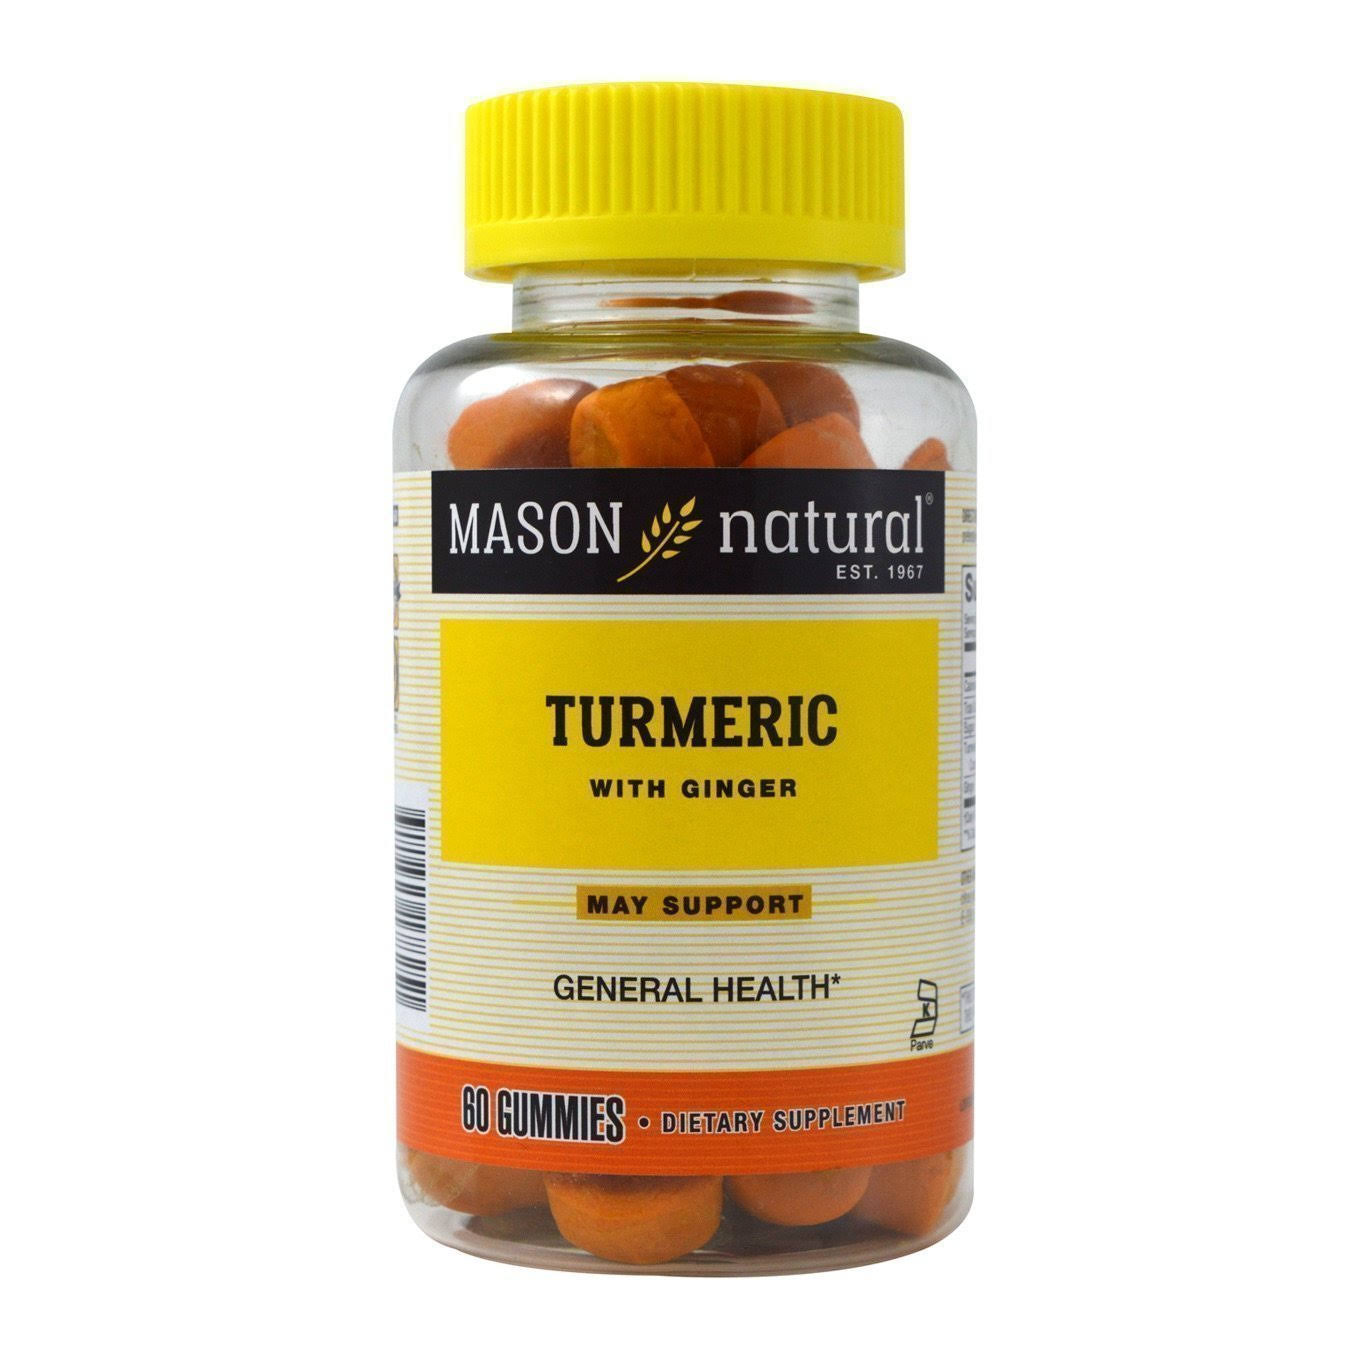 Mason Natural - Turmeric with Ginger - 60 Gummies